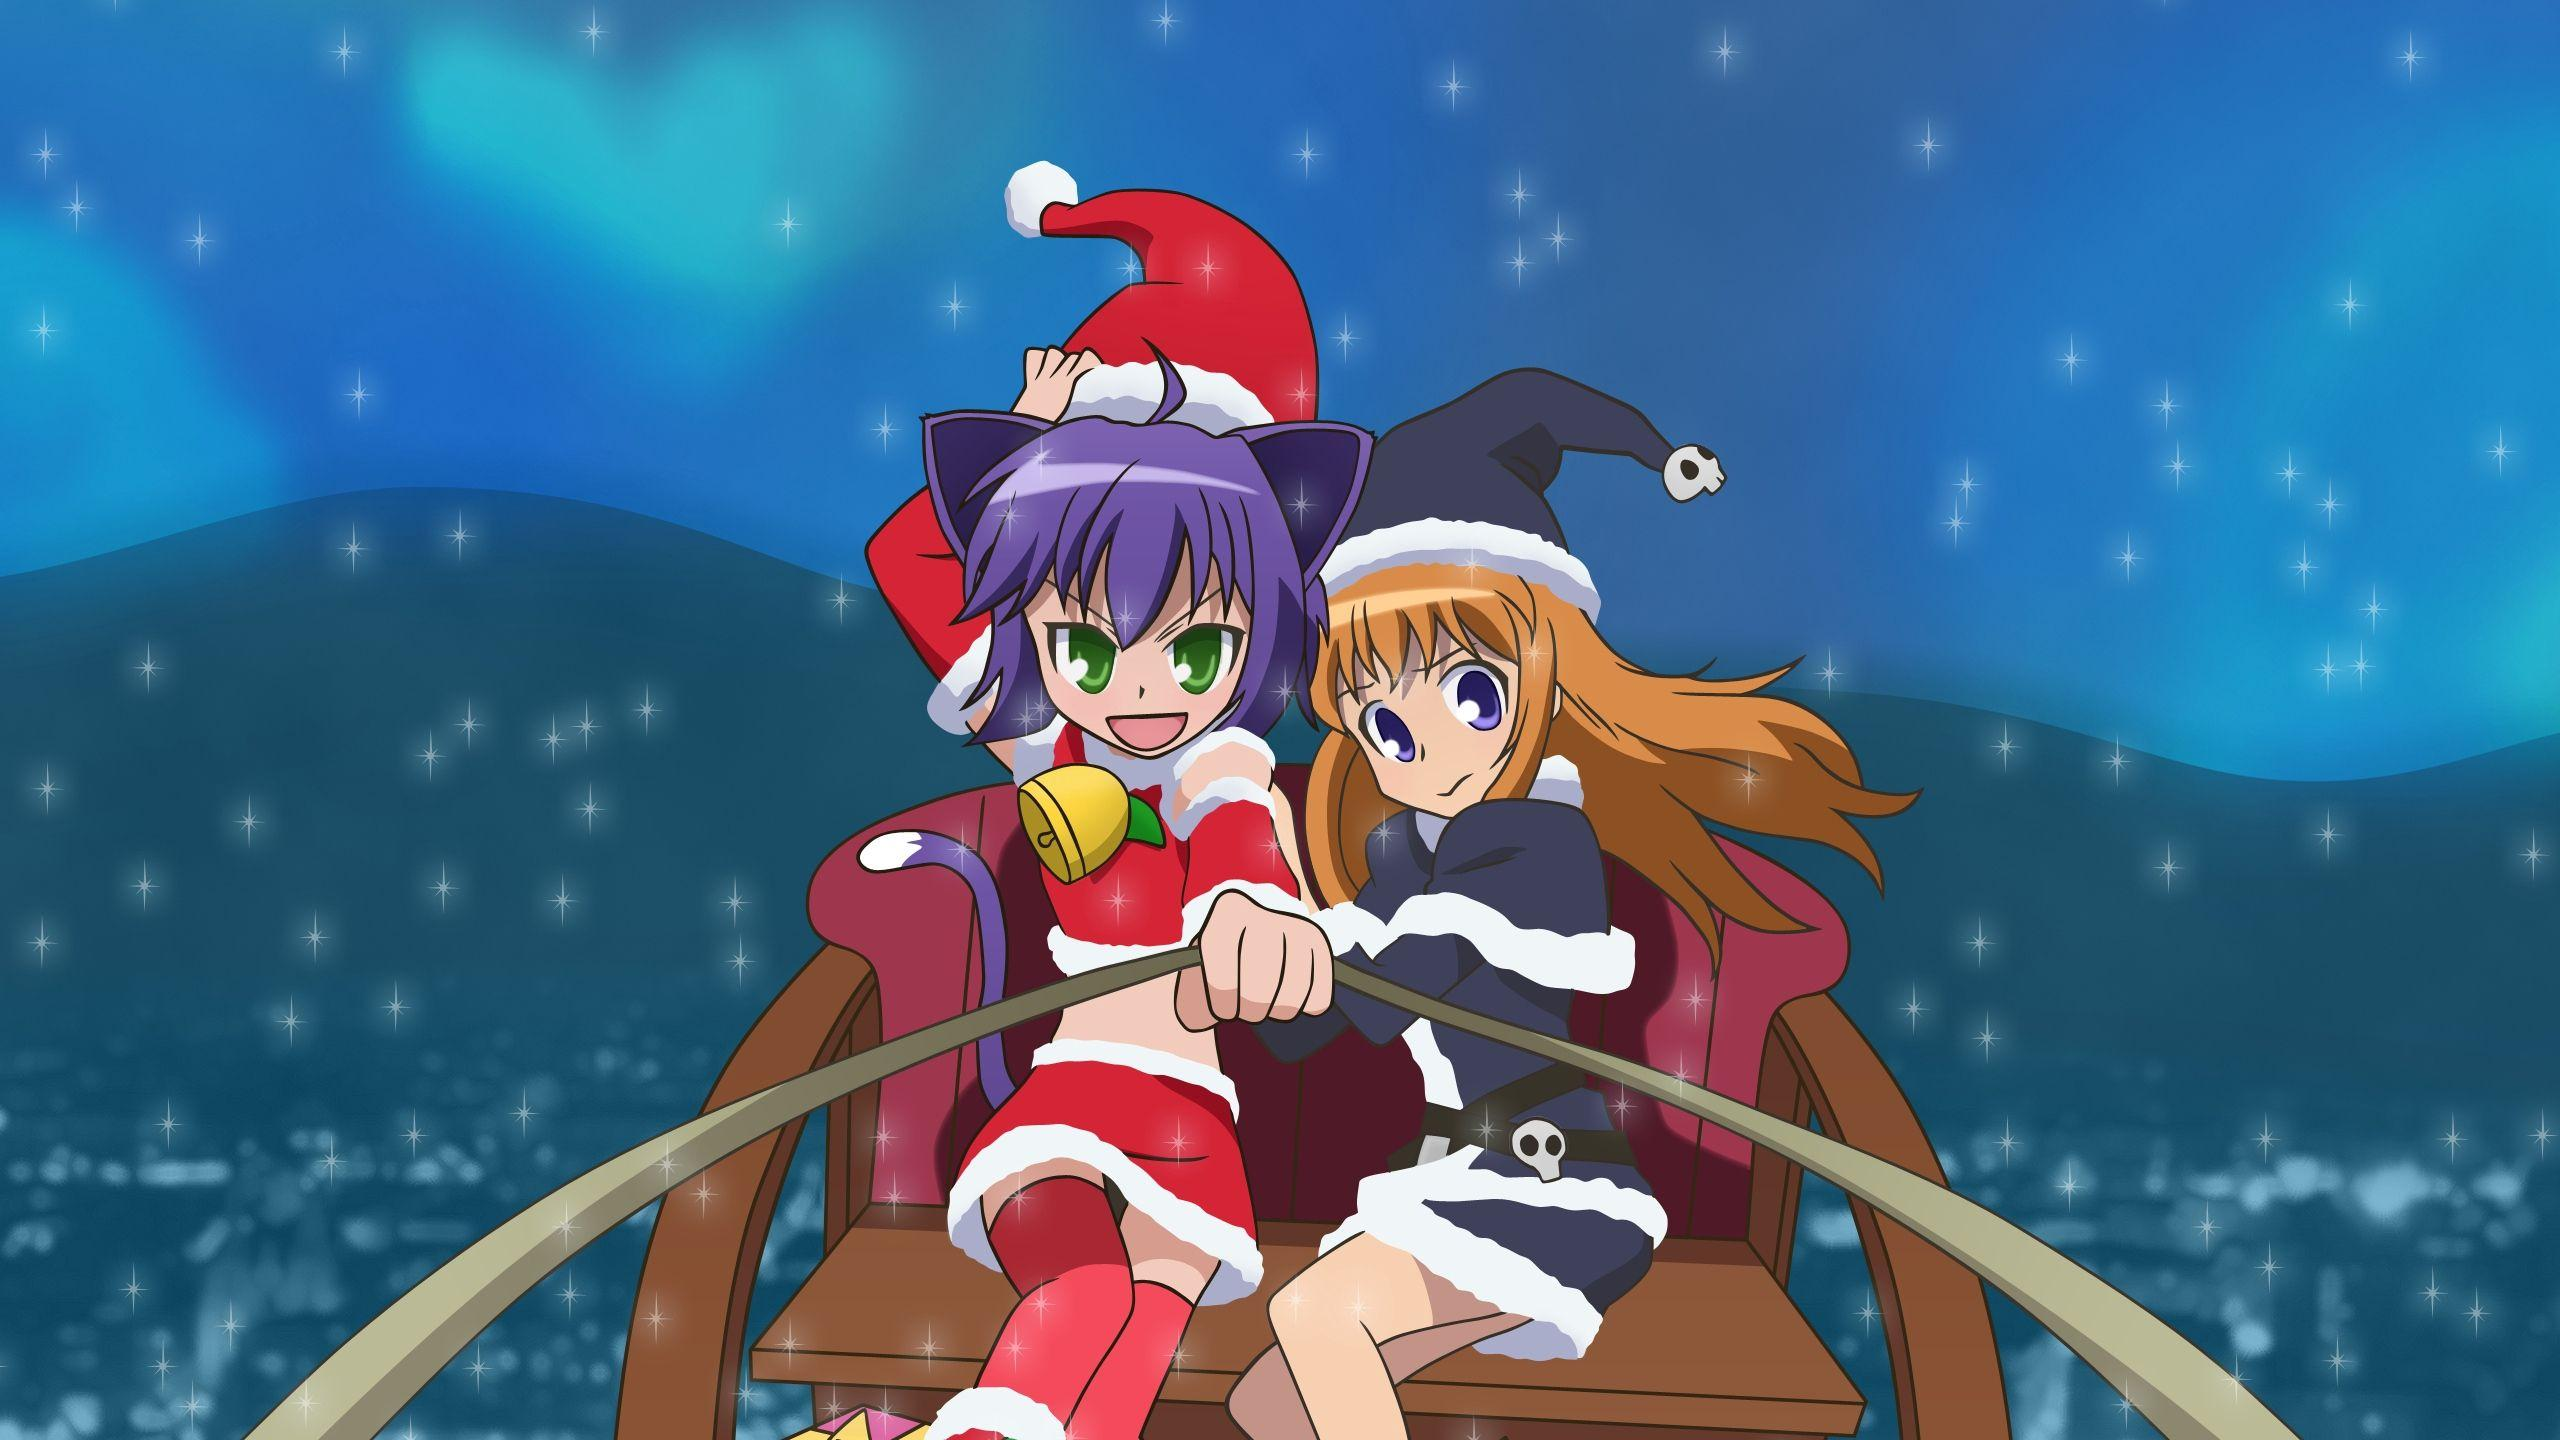 Hd Anime Xmas Wallpapers Wallpaper Cave